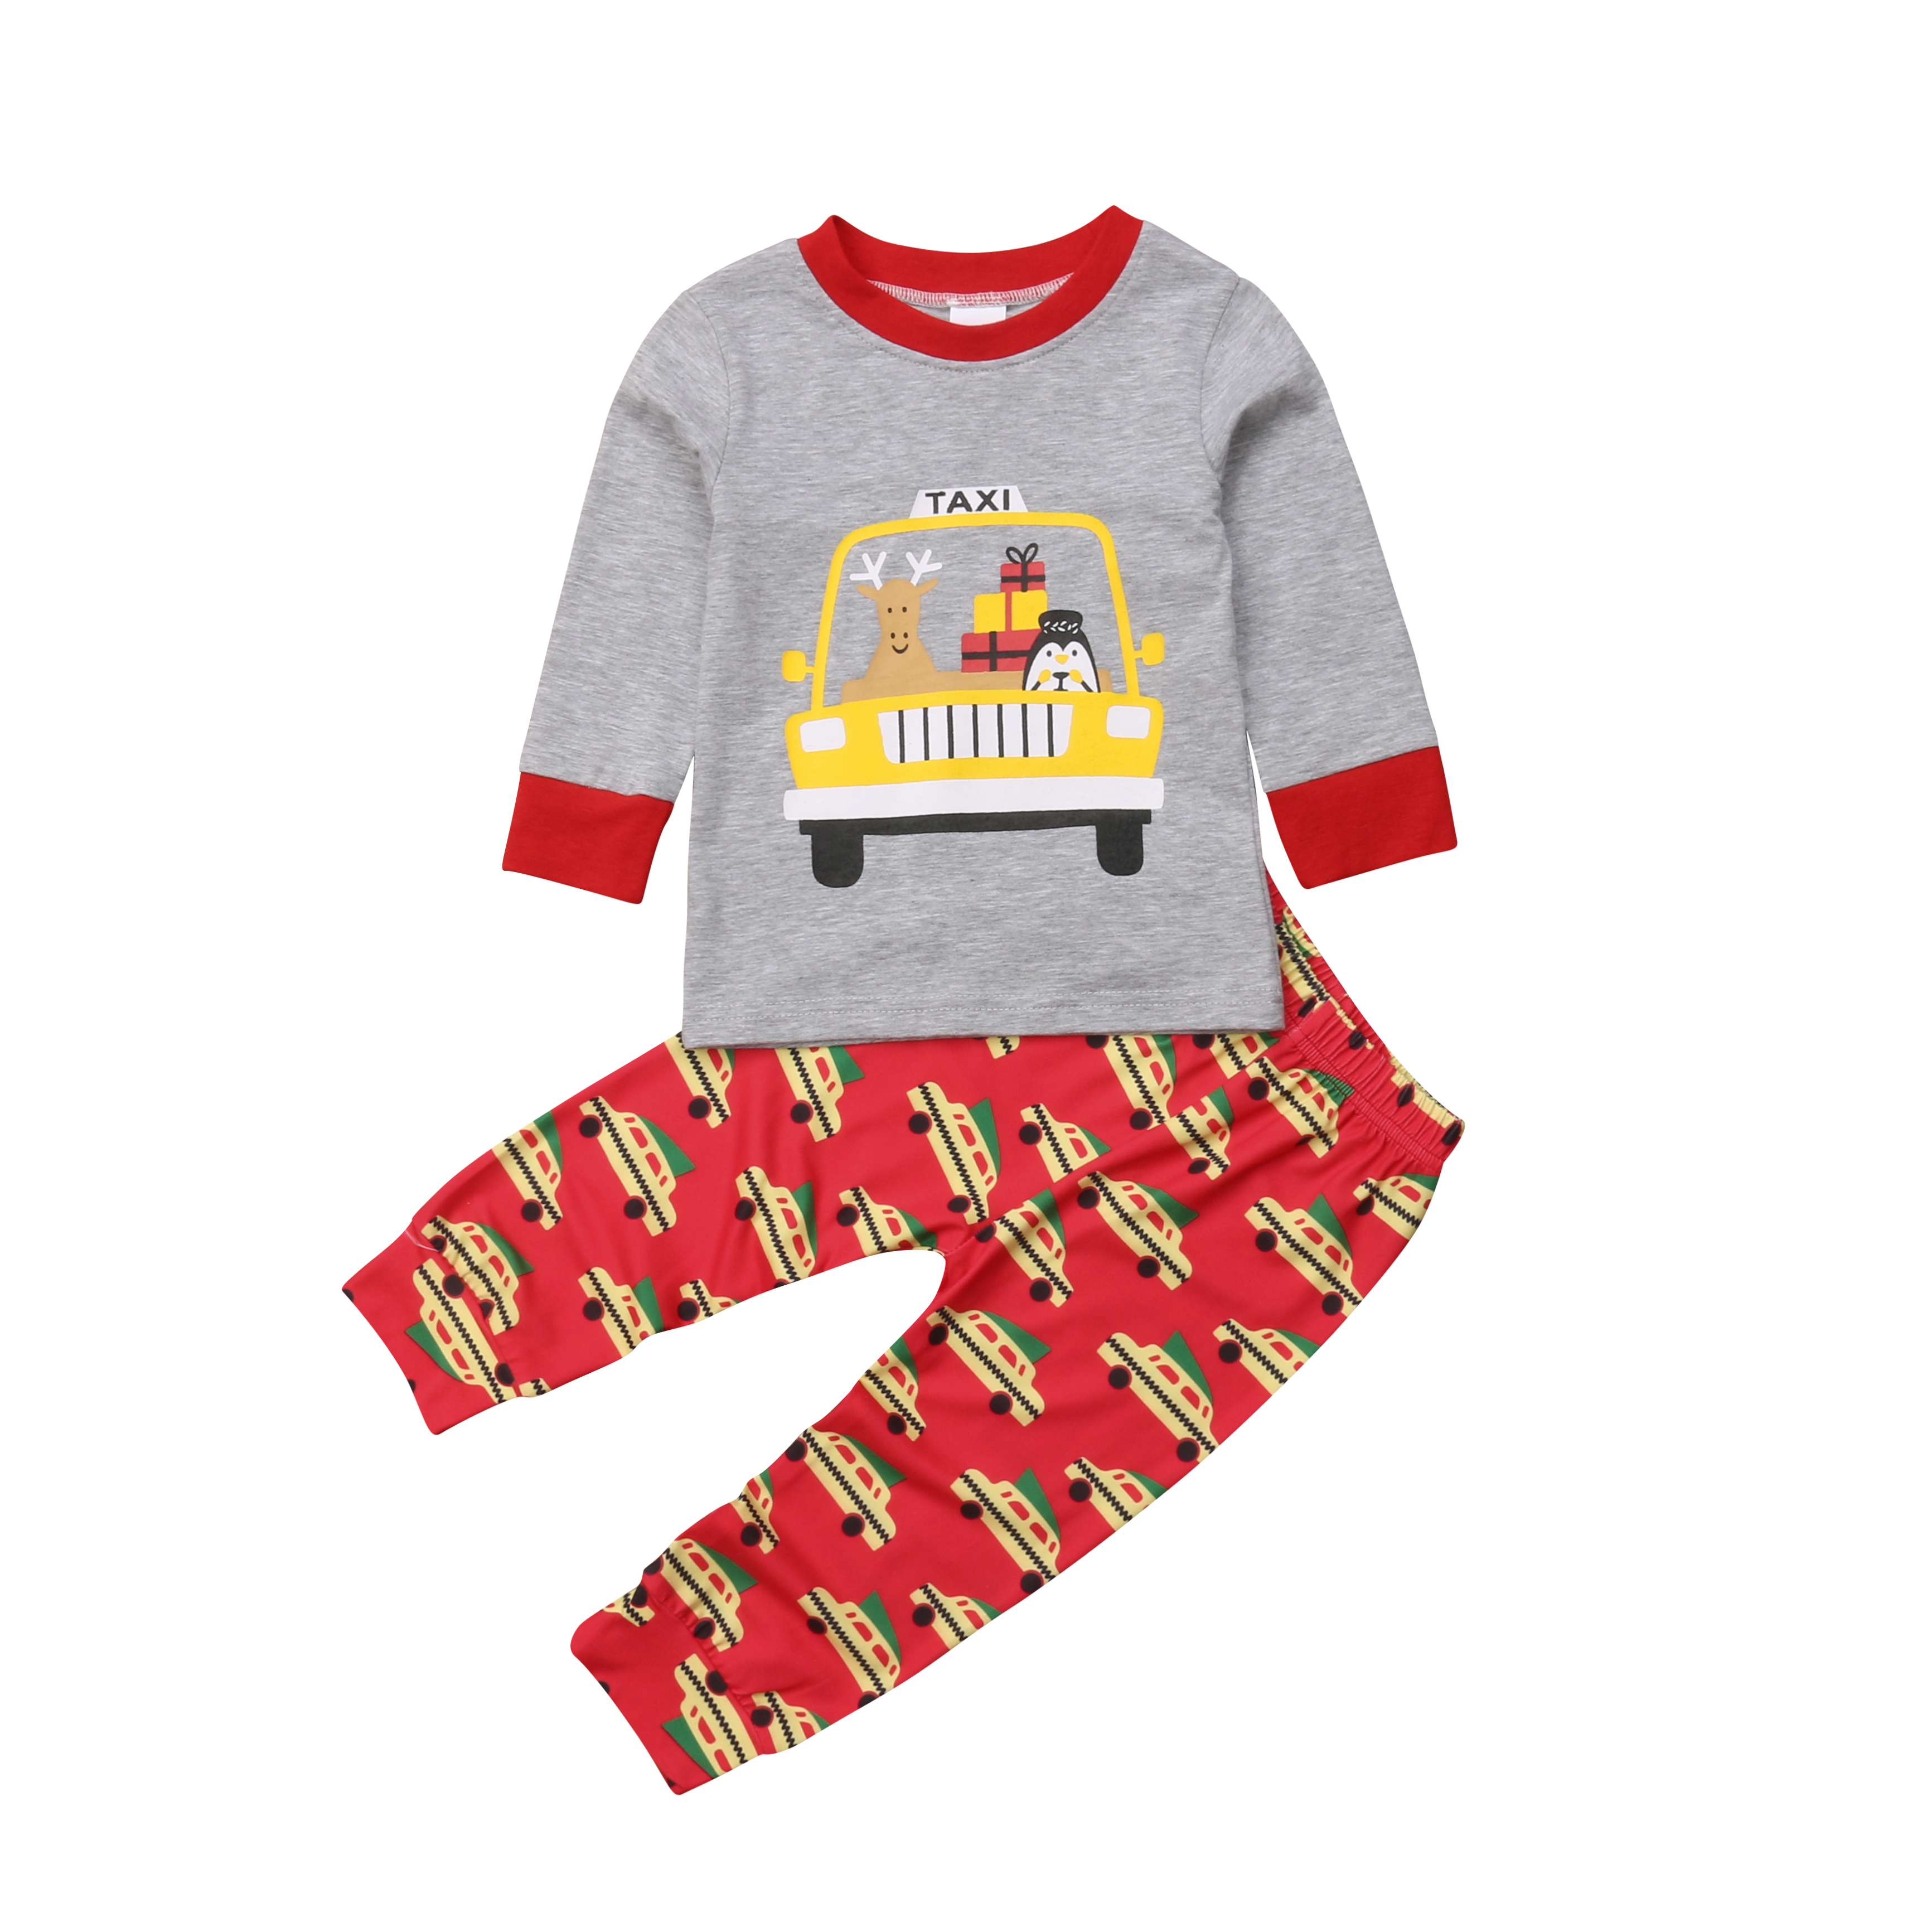 2Pcs Kids Clothes Set Baby Boys Tops Car Print Leggings Pants Outfits Tracksuit Cotton Casual Party Clothes Kid 1-6T 1 5y 2pcs set summer casual baby boy clothes cotton frog printedshort sleeve tees tops pants outfits